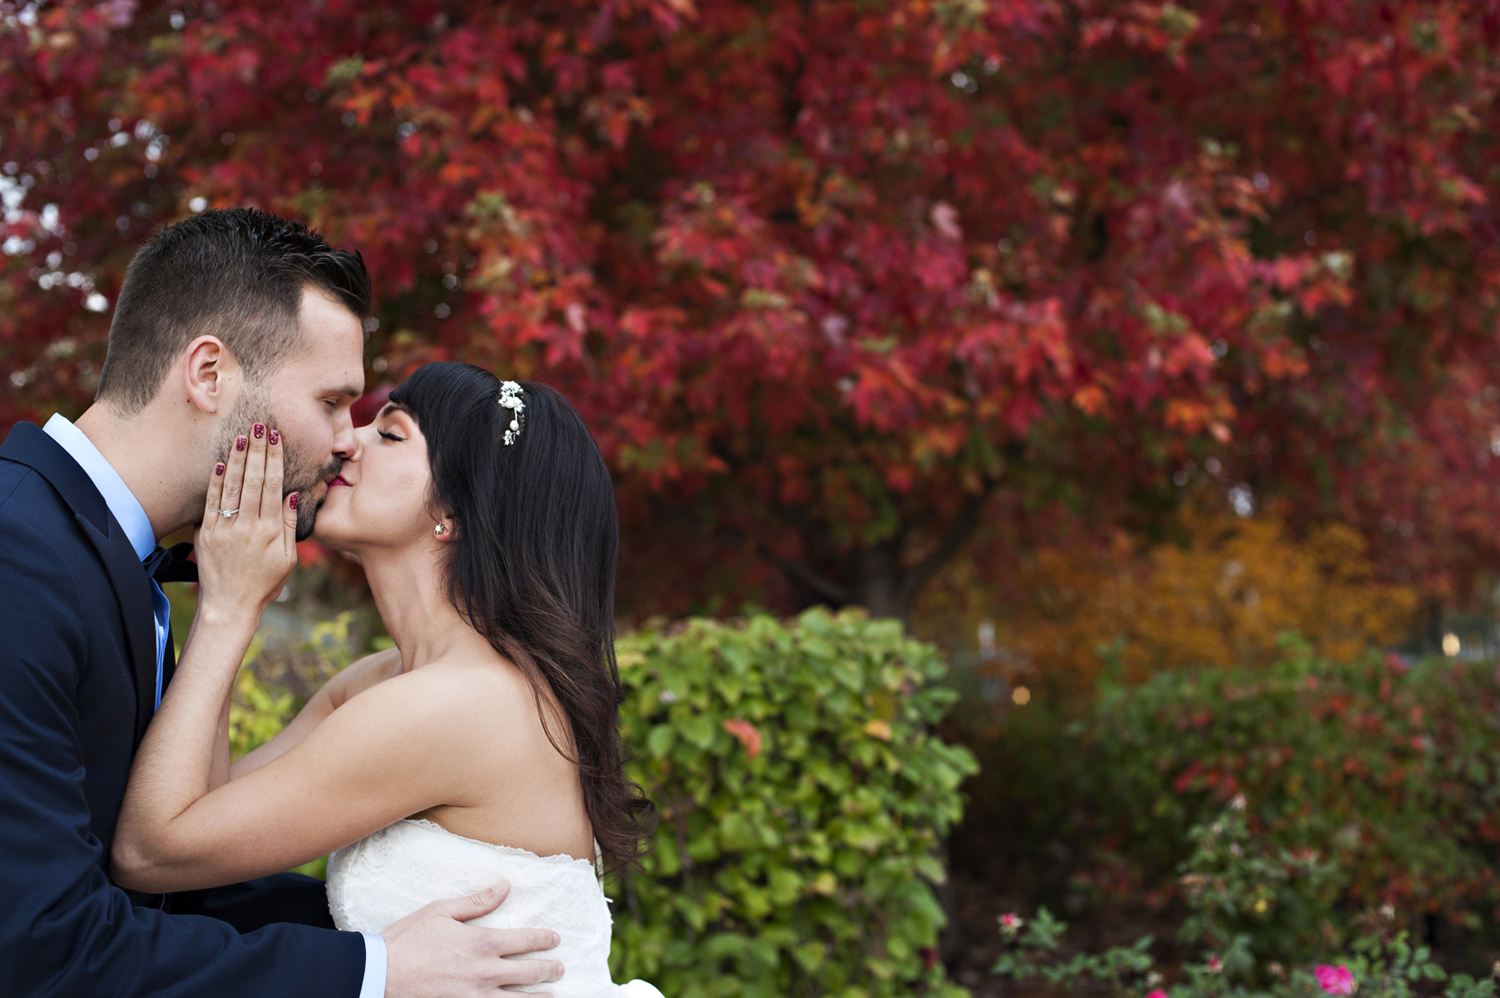 Bride and groom kissing on their wedding day against fall leaves. Hoboken wedding photos